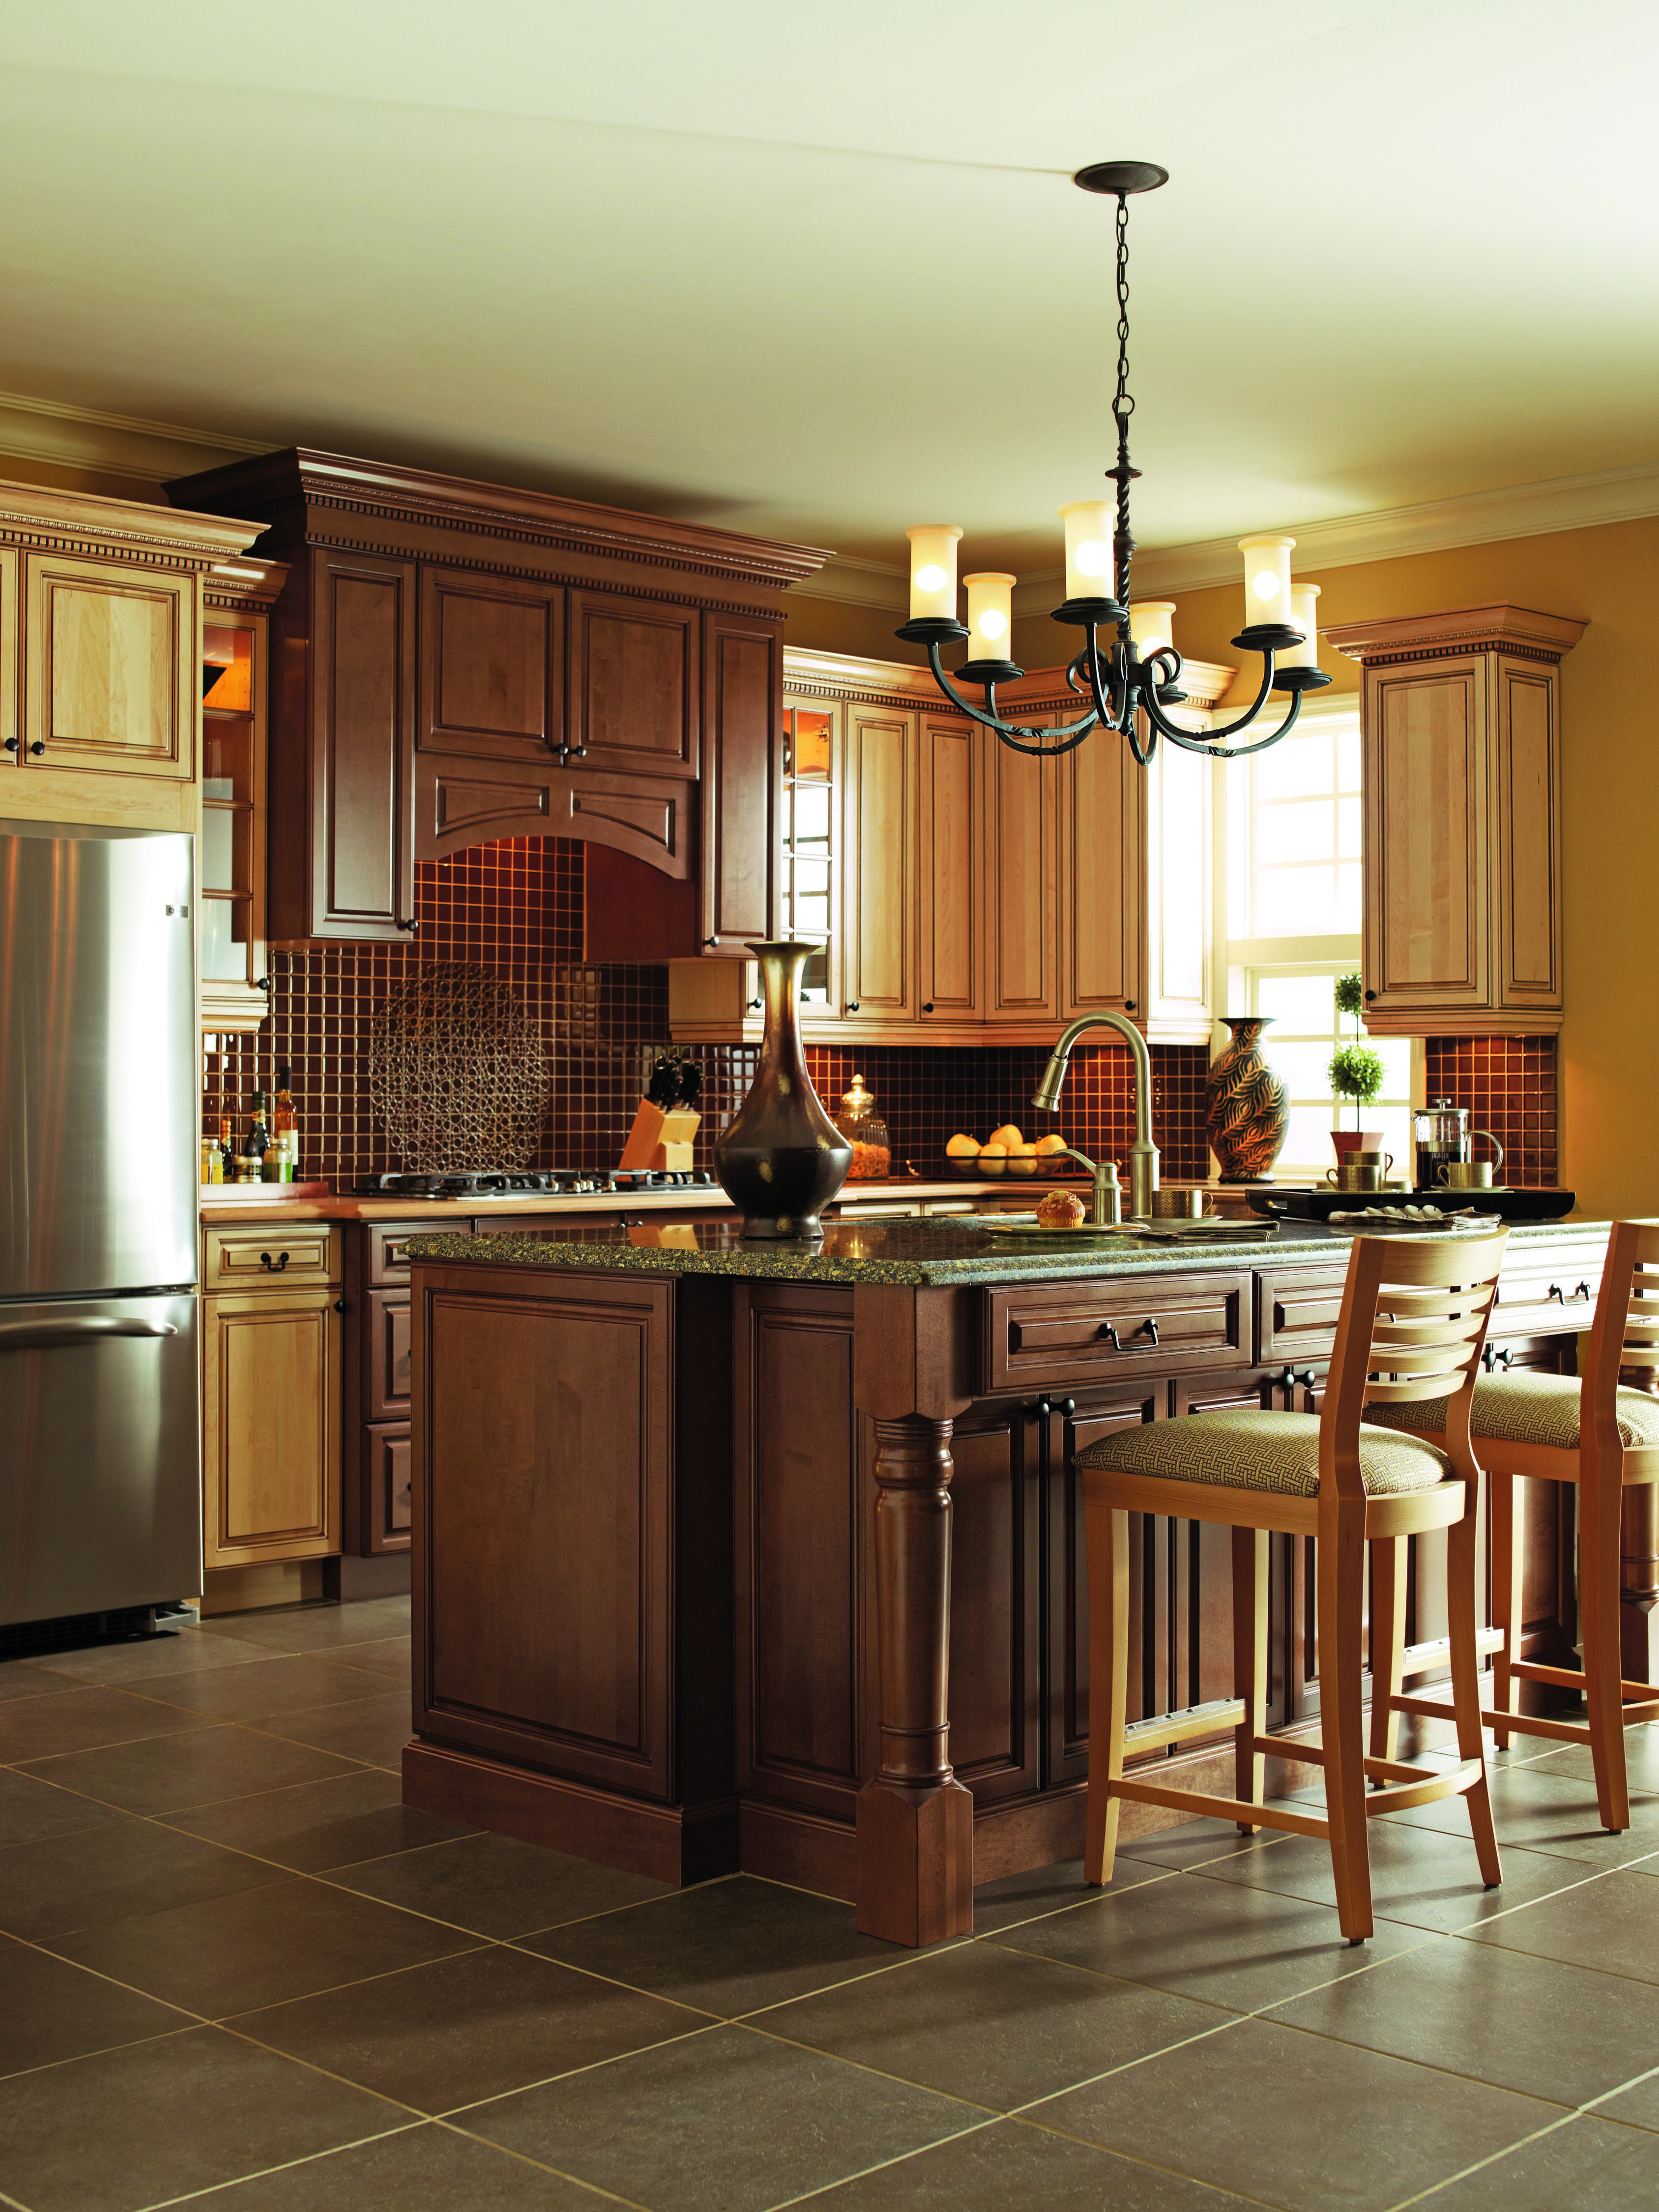 Home Depot Canada Kitchen Island Kraftmaid Kitchens Traditional From Thomasville Classic Fall